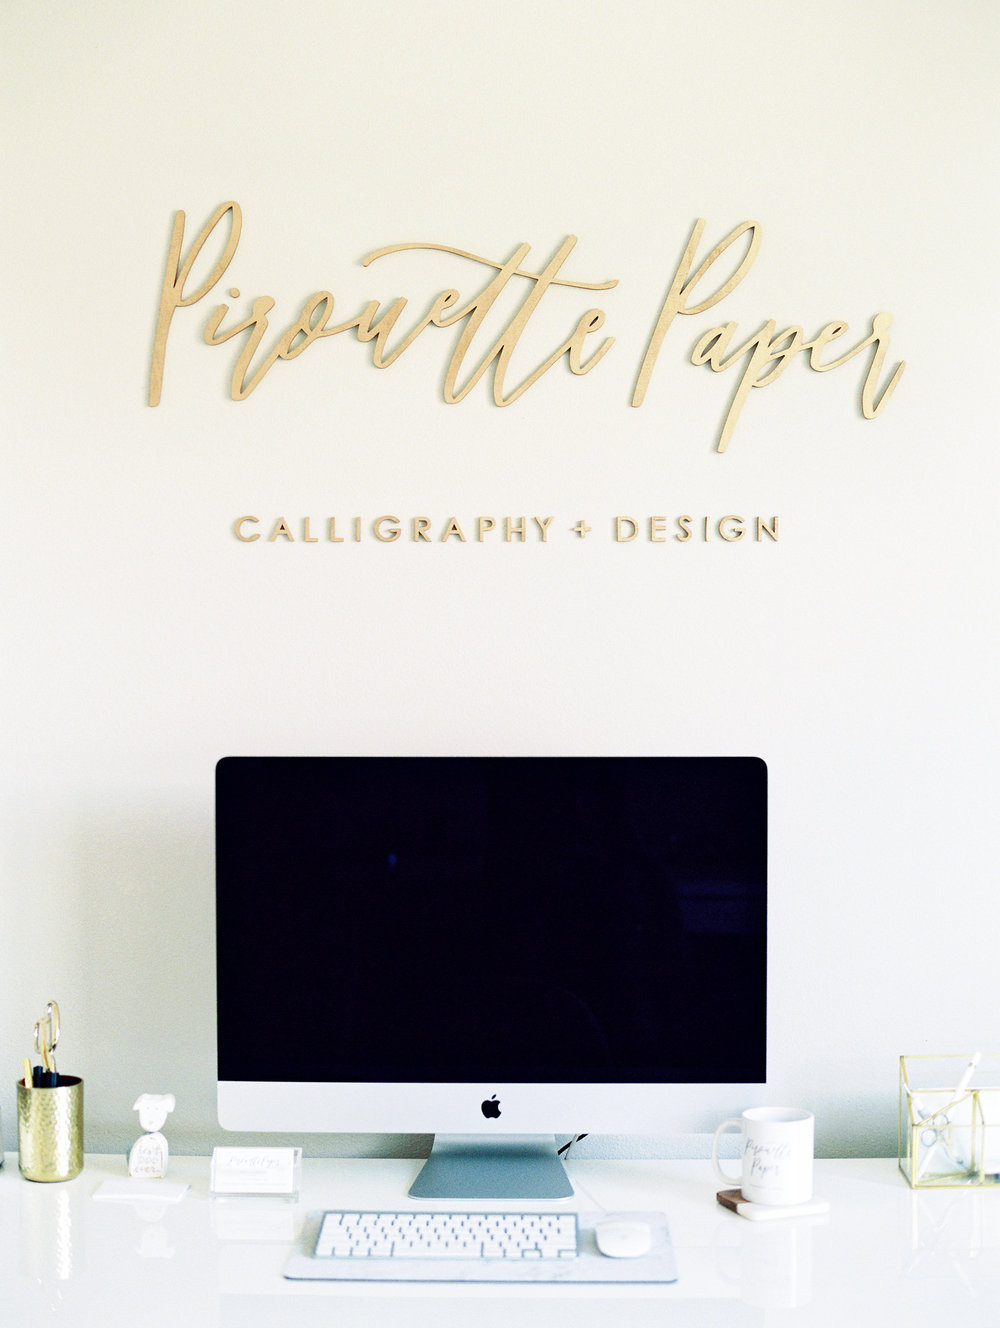 Pirouette Paper Office Tour | Home Studio Tour |  Mallory Dawn Photography